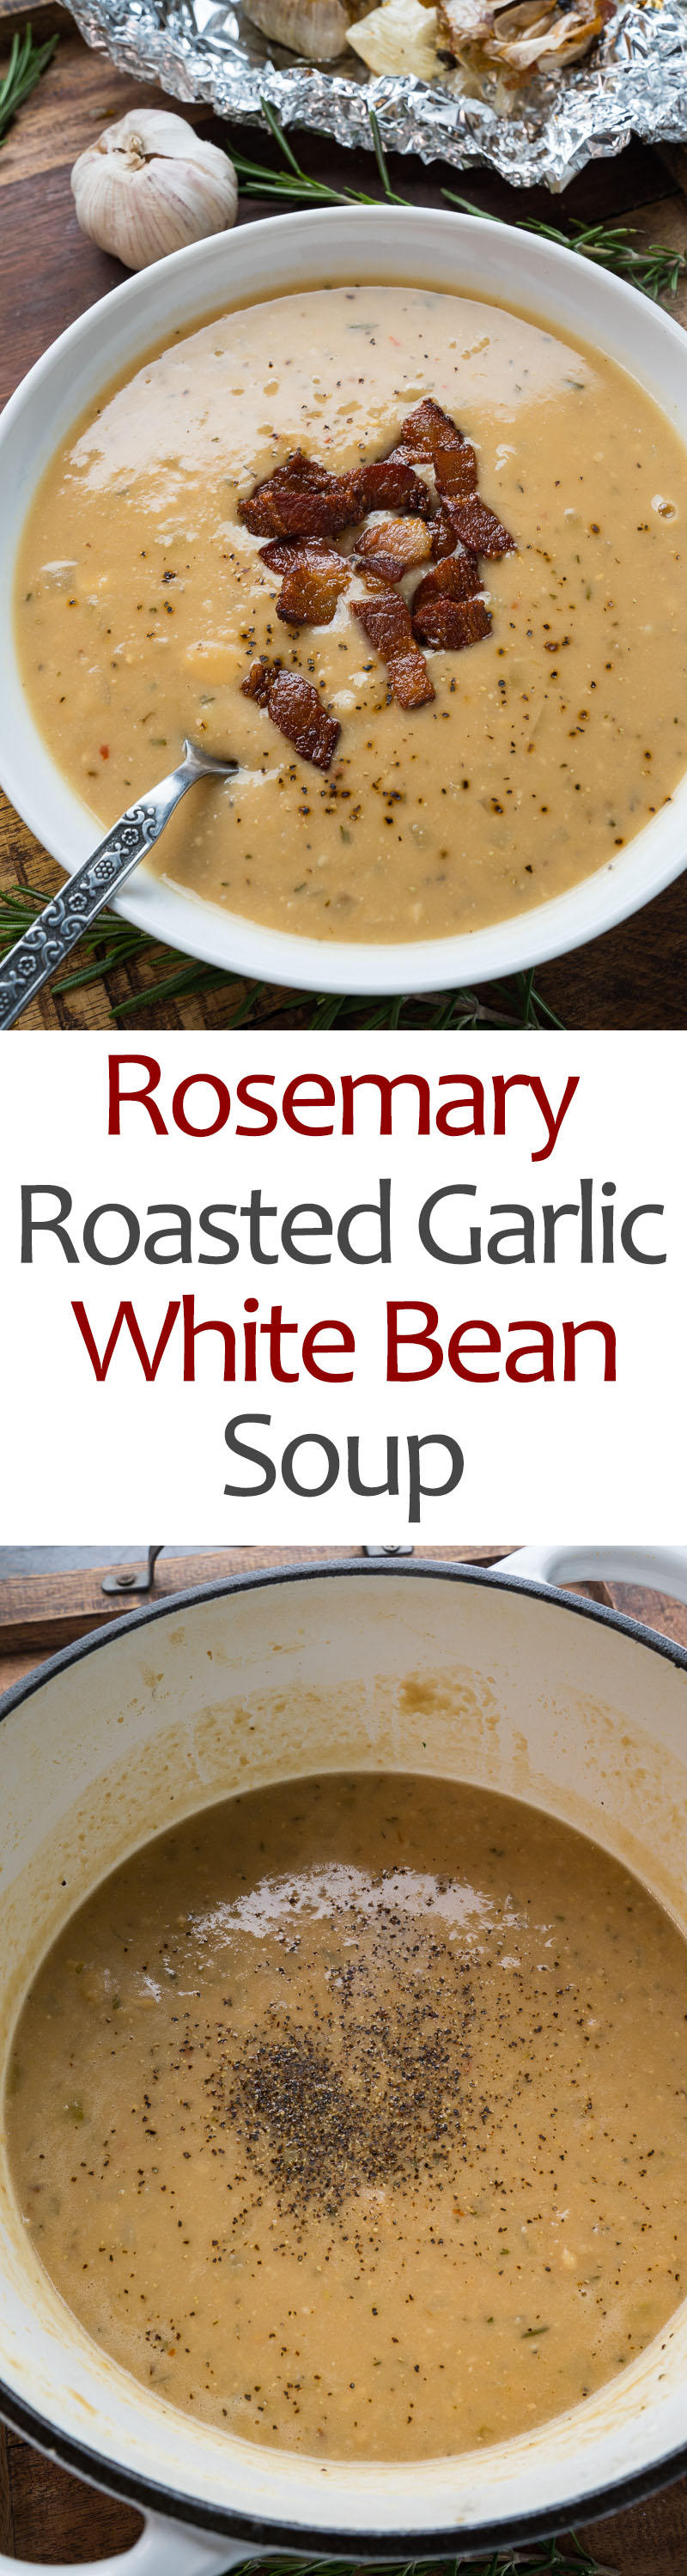 Rosemary and Roasted Garlic White Bean Soup